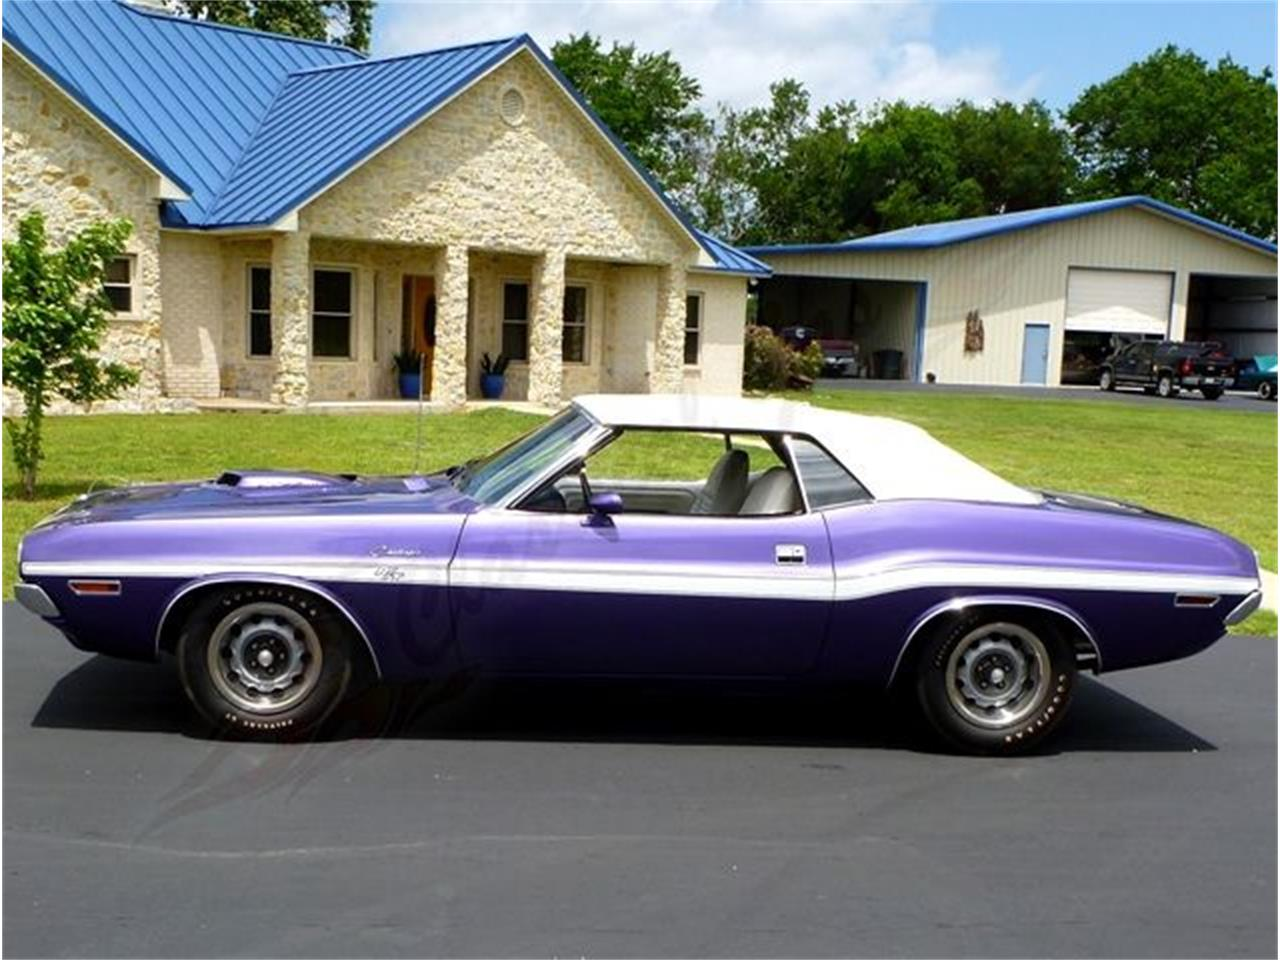 Large Picture of Classic '70 Dodge Challenger R/T located in Texas - $189,500.00 - LTOP